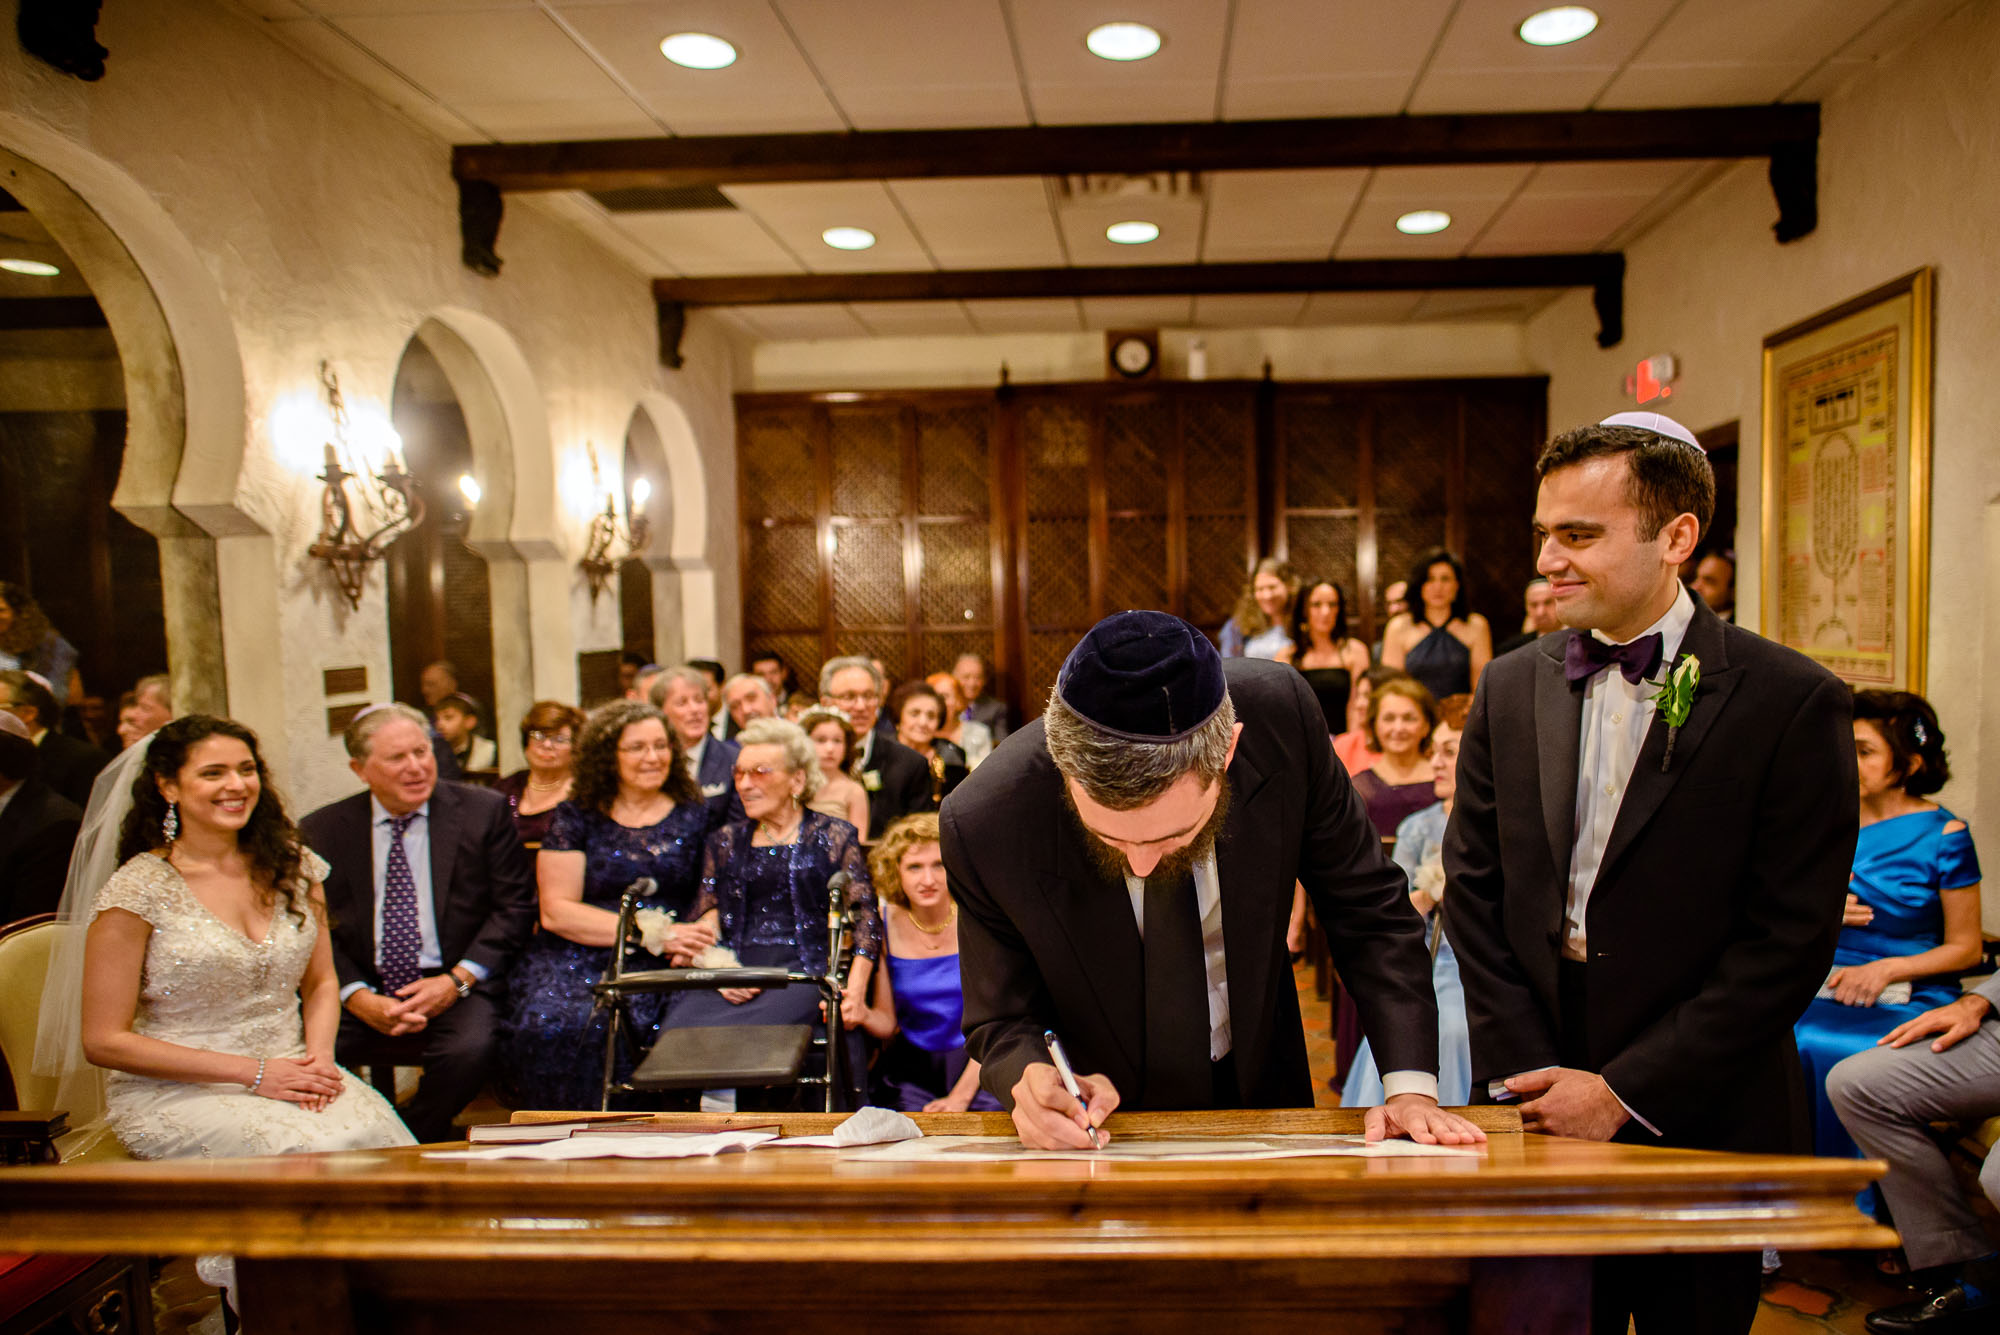 The Sephardic Temple wedding Ketubah signing